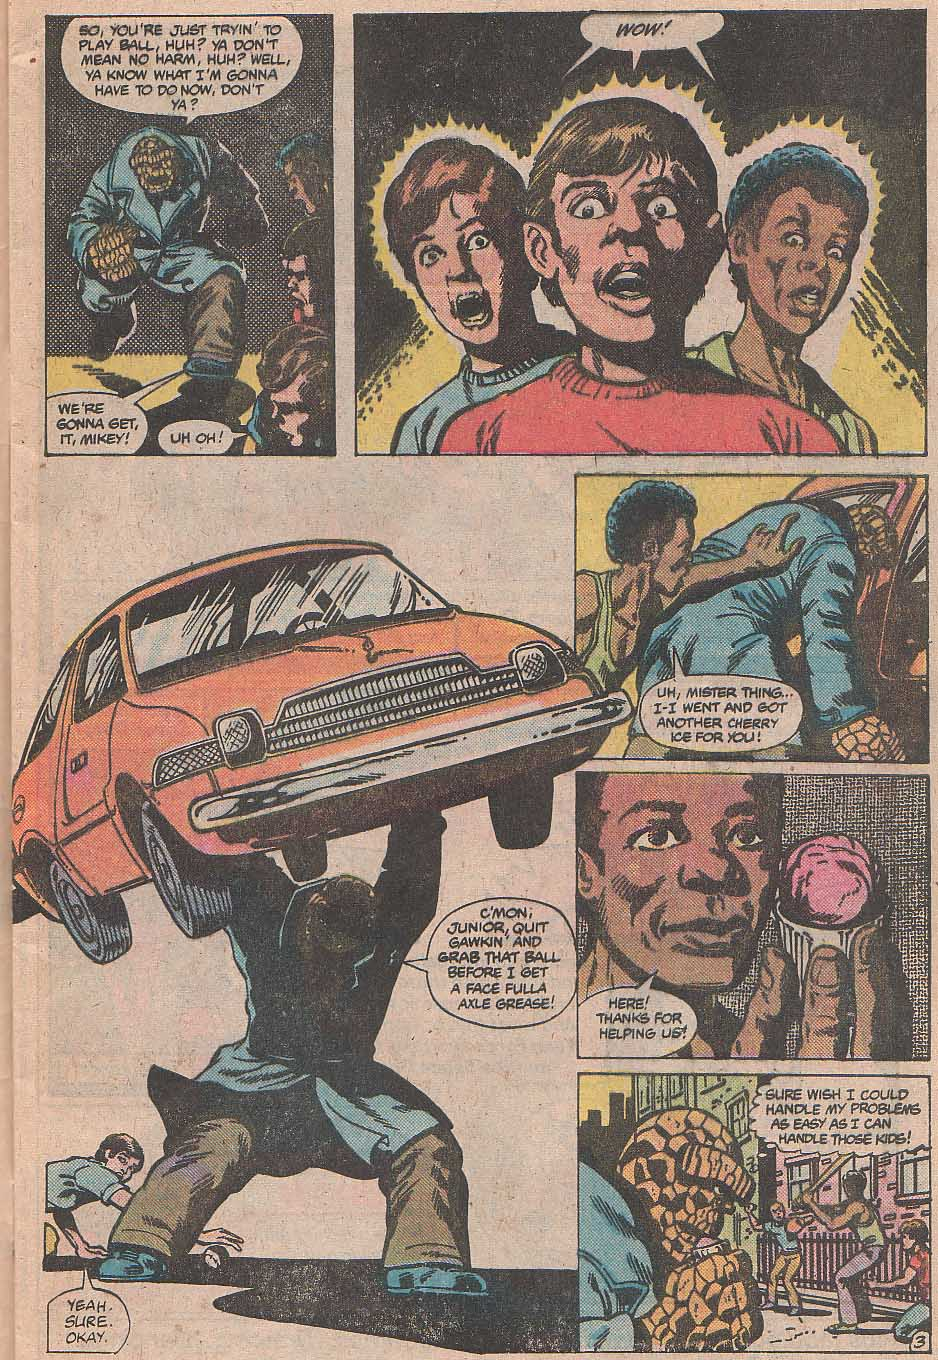 Marvel Two-In-One (1974) #70 pg.3, penciled by Mike Nasser & inked by Gene Day.